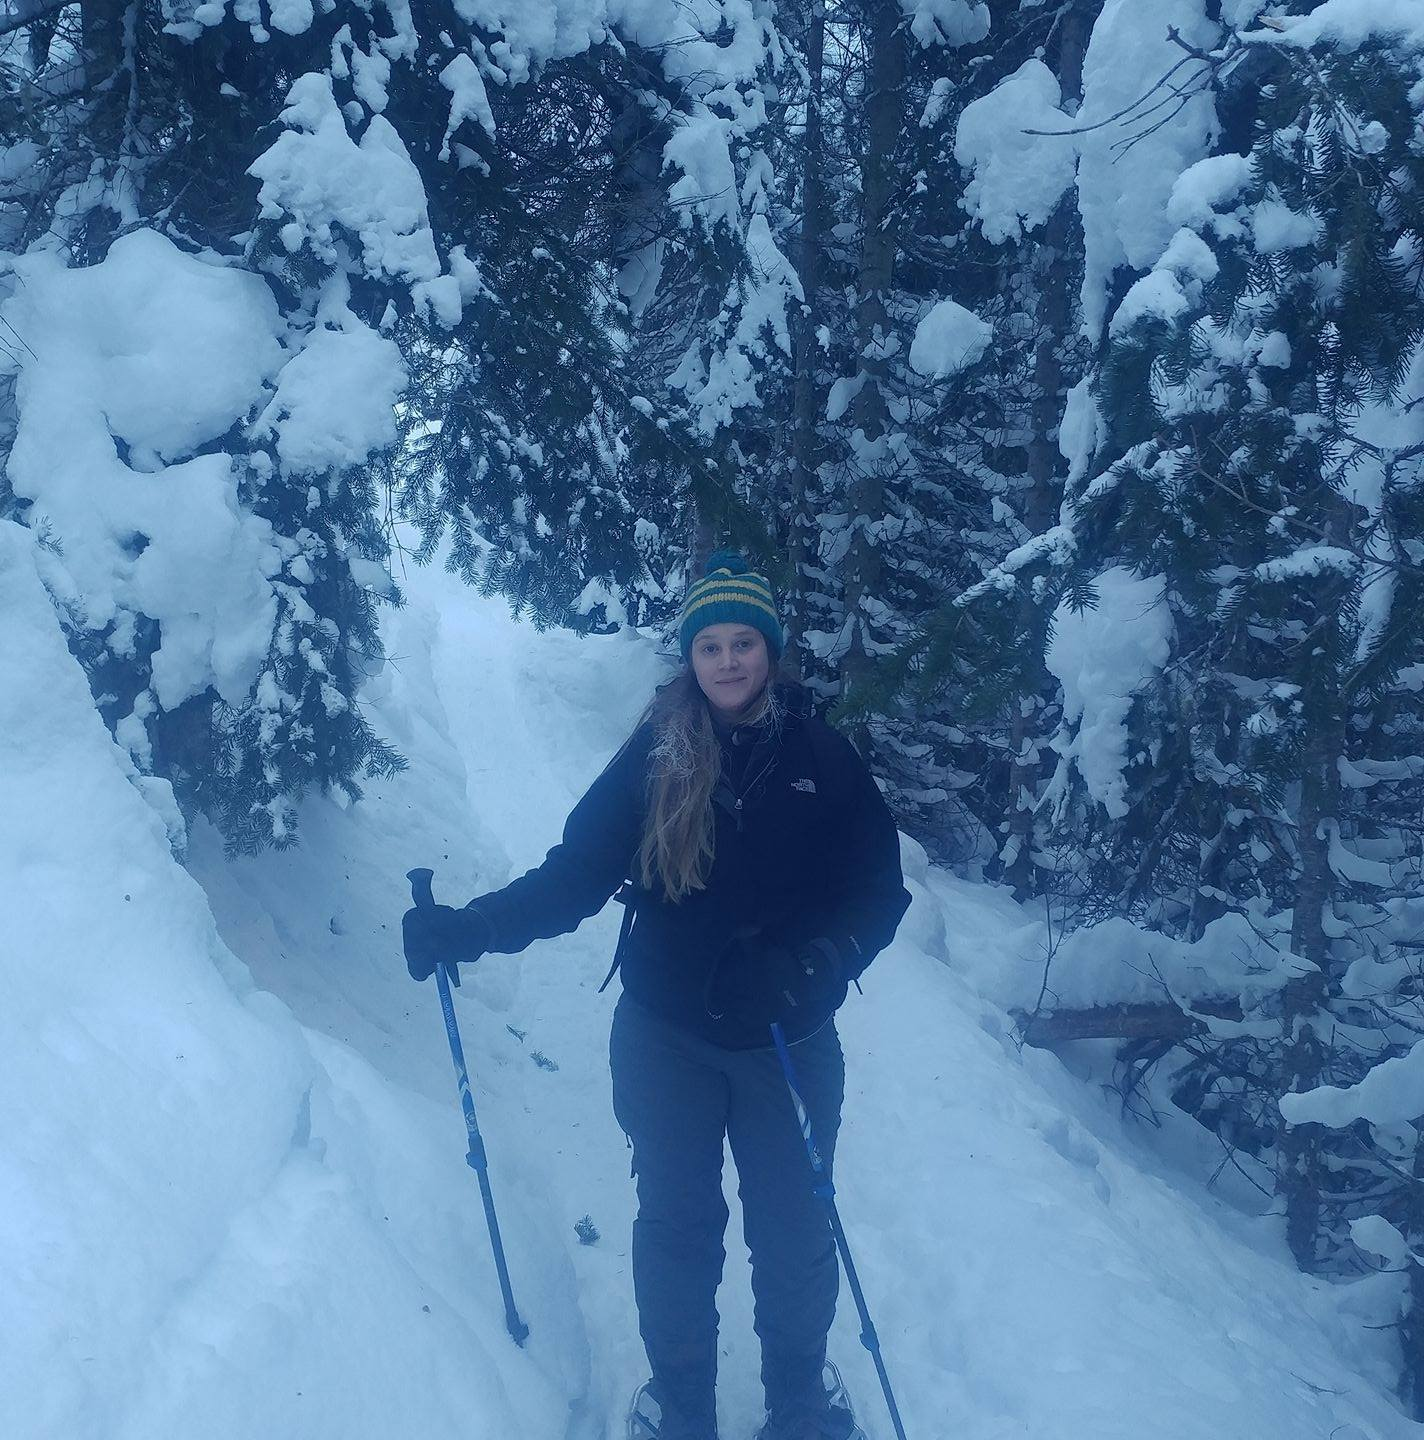 Snowshoeing in -20 at Manning Provincial Park. Jan 2017.